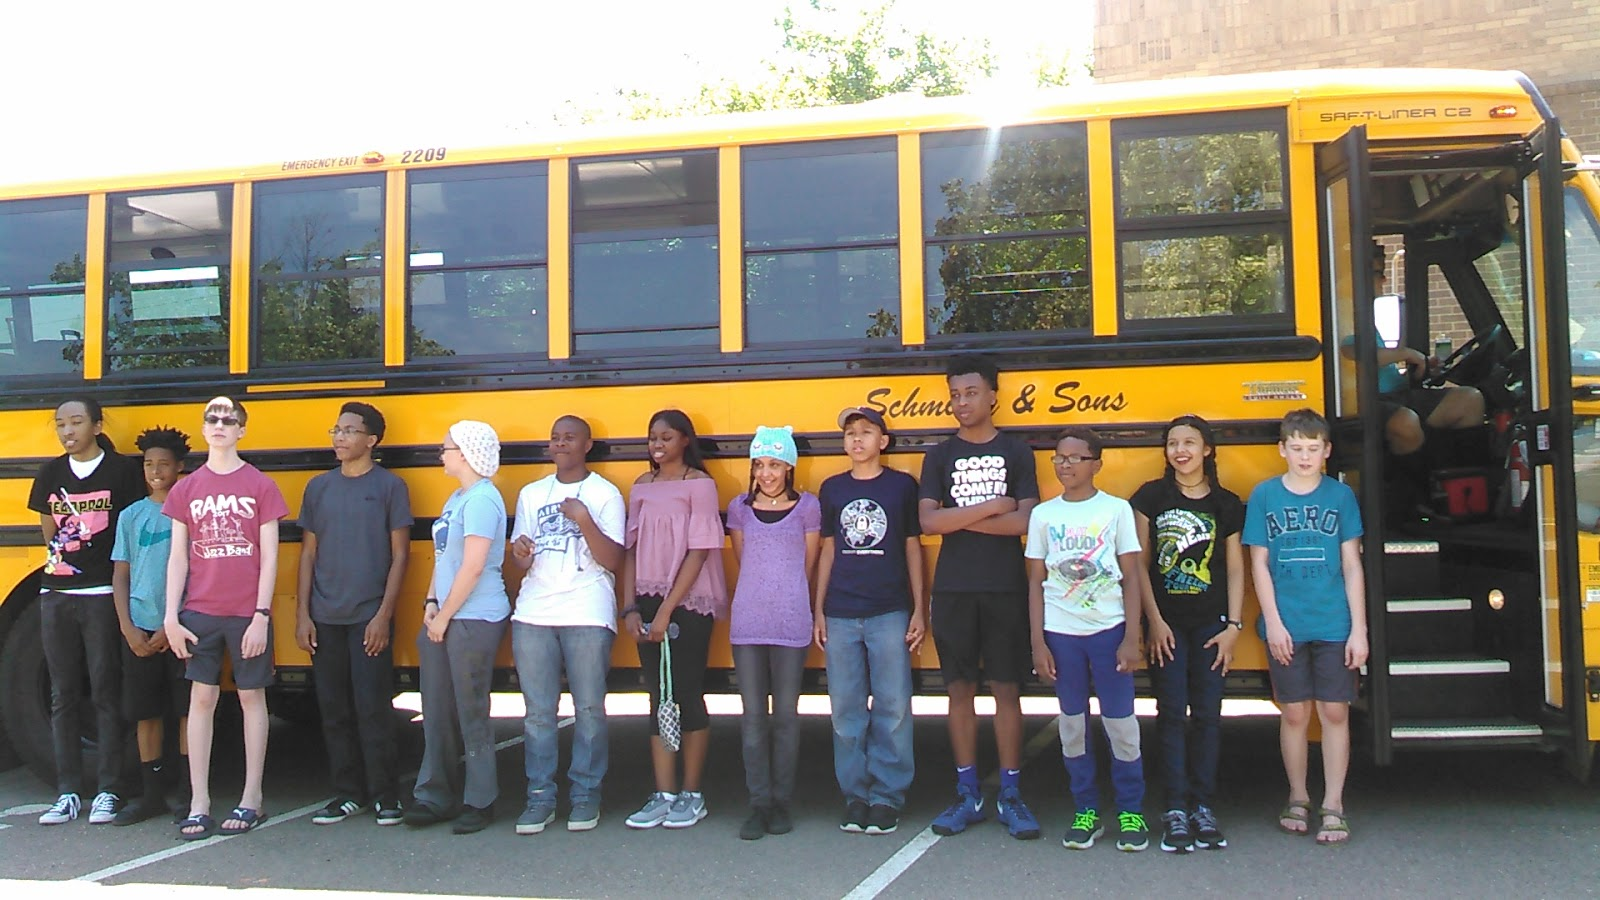 Twin Cities BDPA campers prepare to board the bus enroute to pick up additional campers from the Rochester area